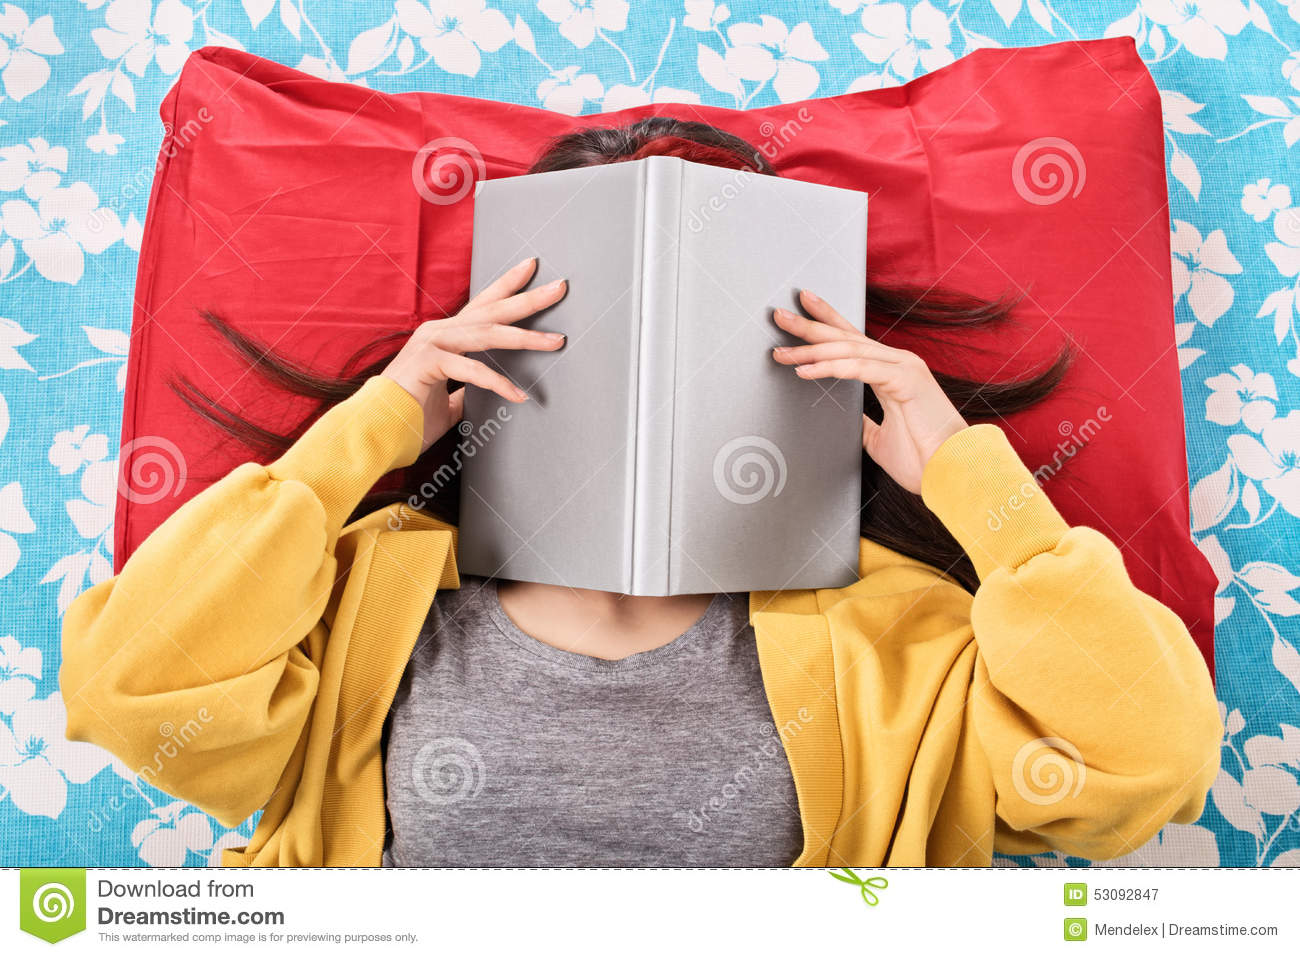 Book Covering Face : Young girl covering her face with an open book stock image